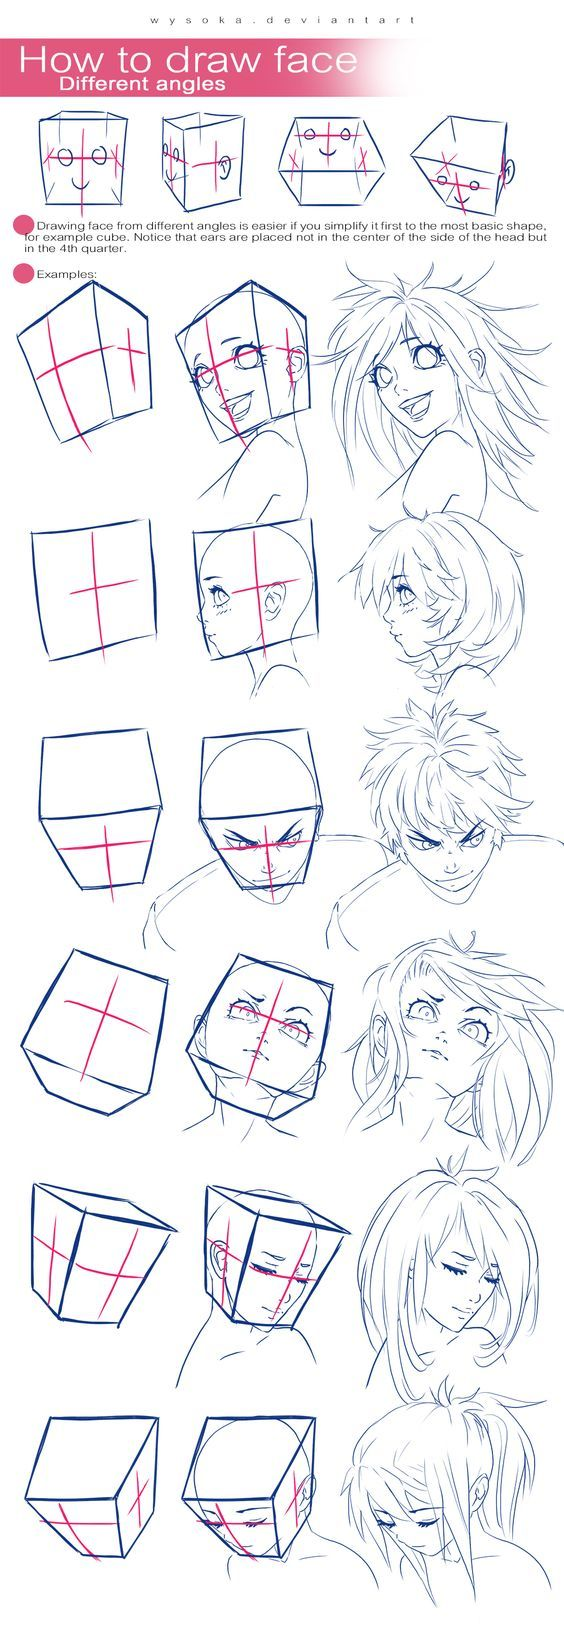 How To Draw Face  Different Angles By Wysokaiantart On @deviantart